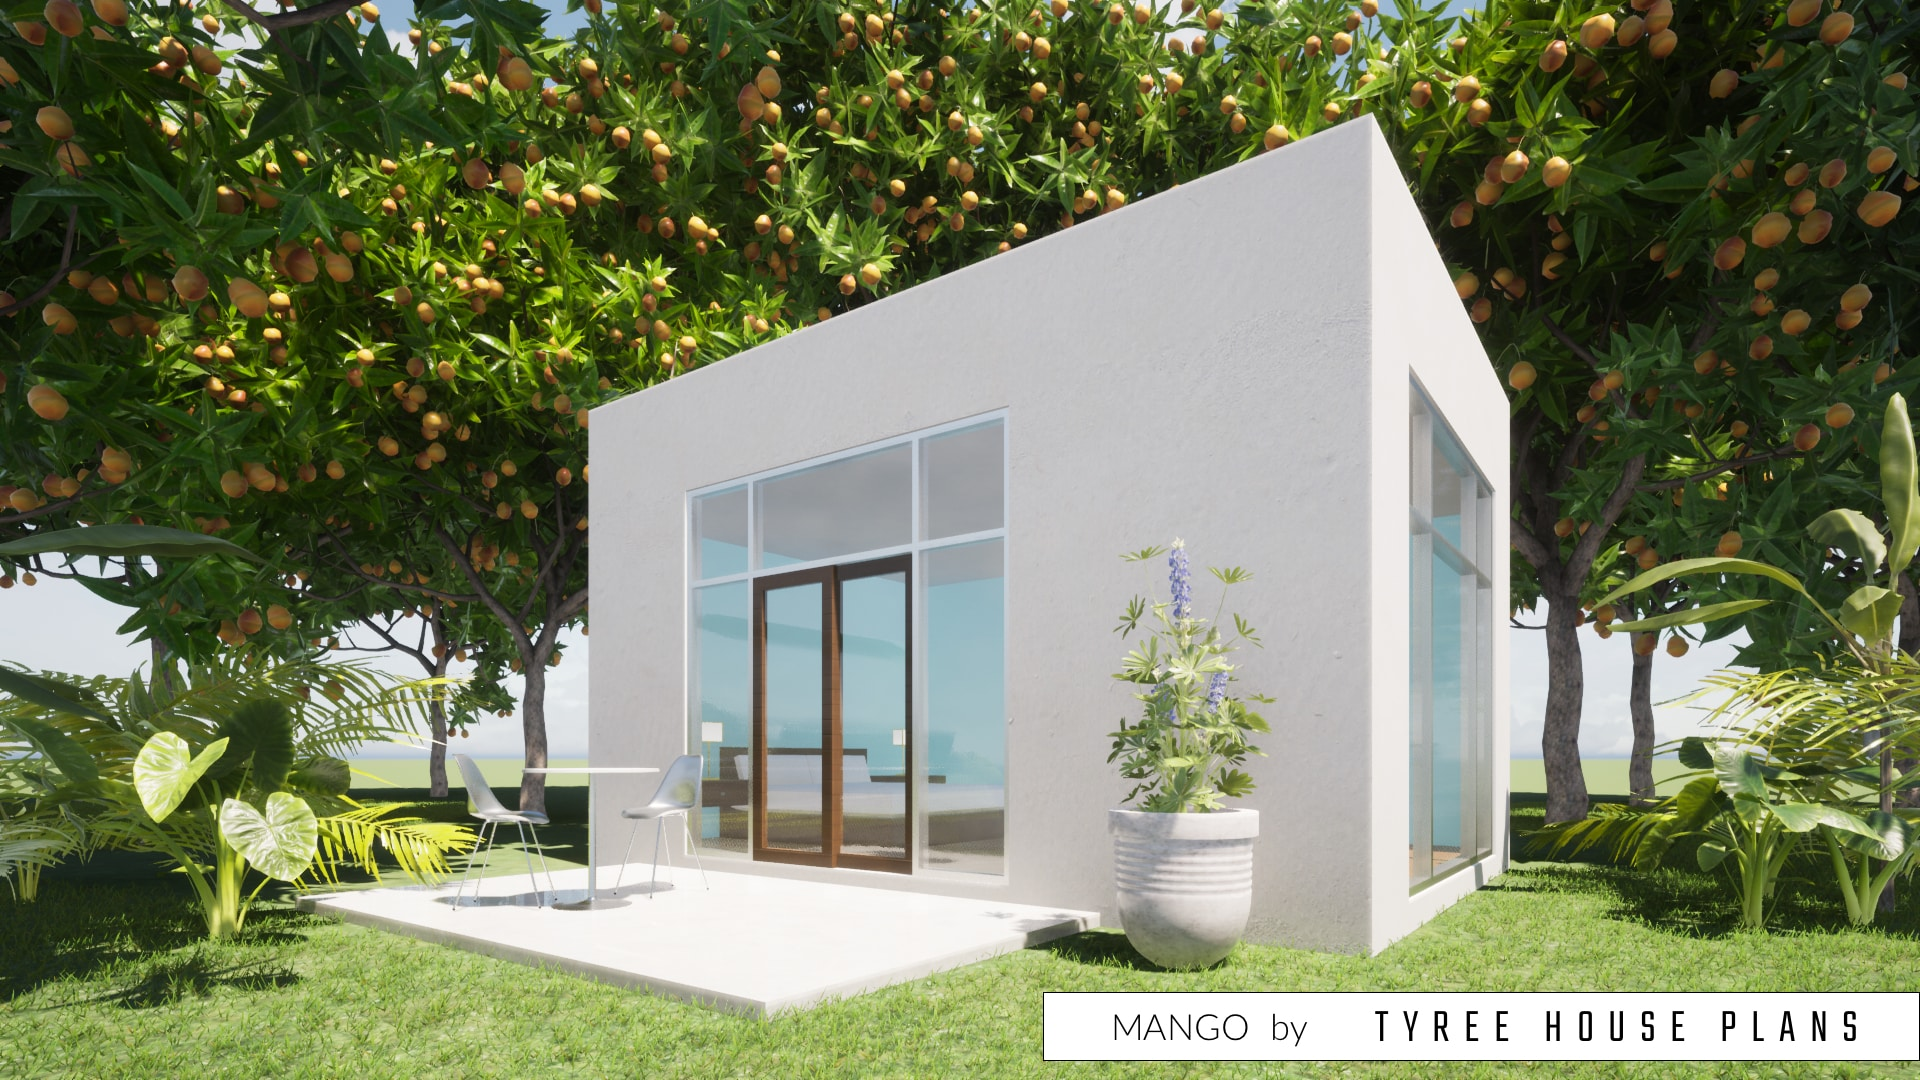 Mango House Plan by Tyree House Plans